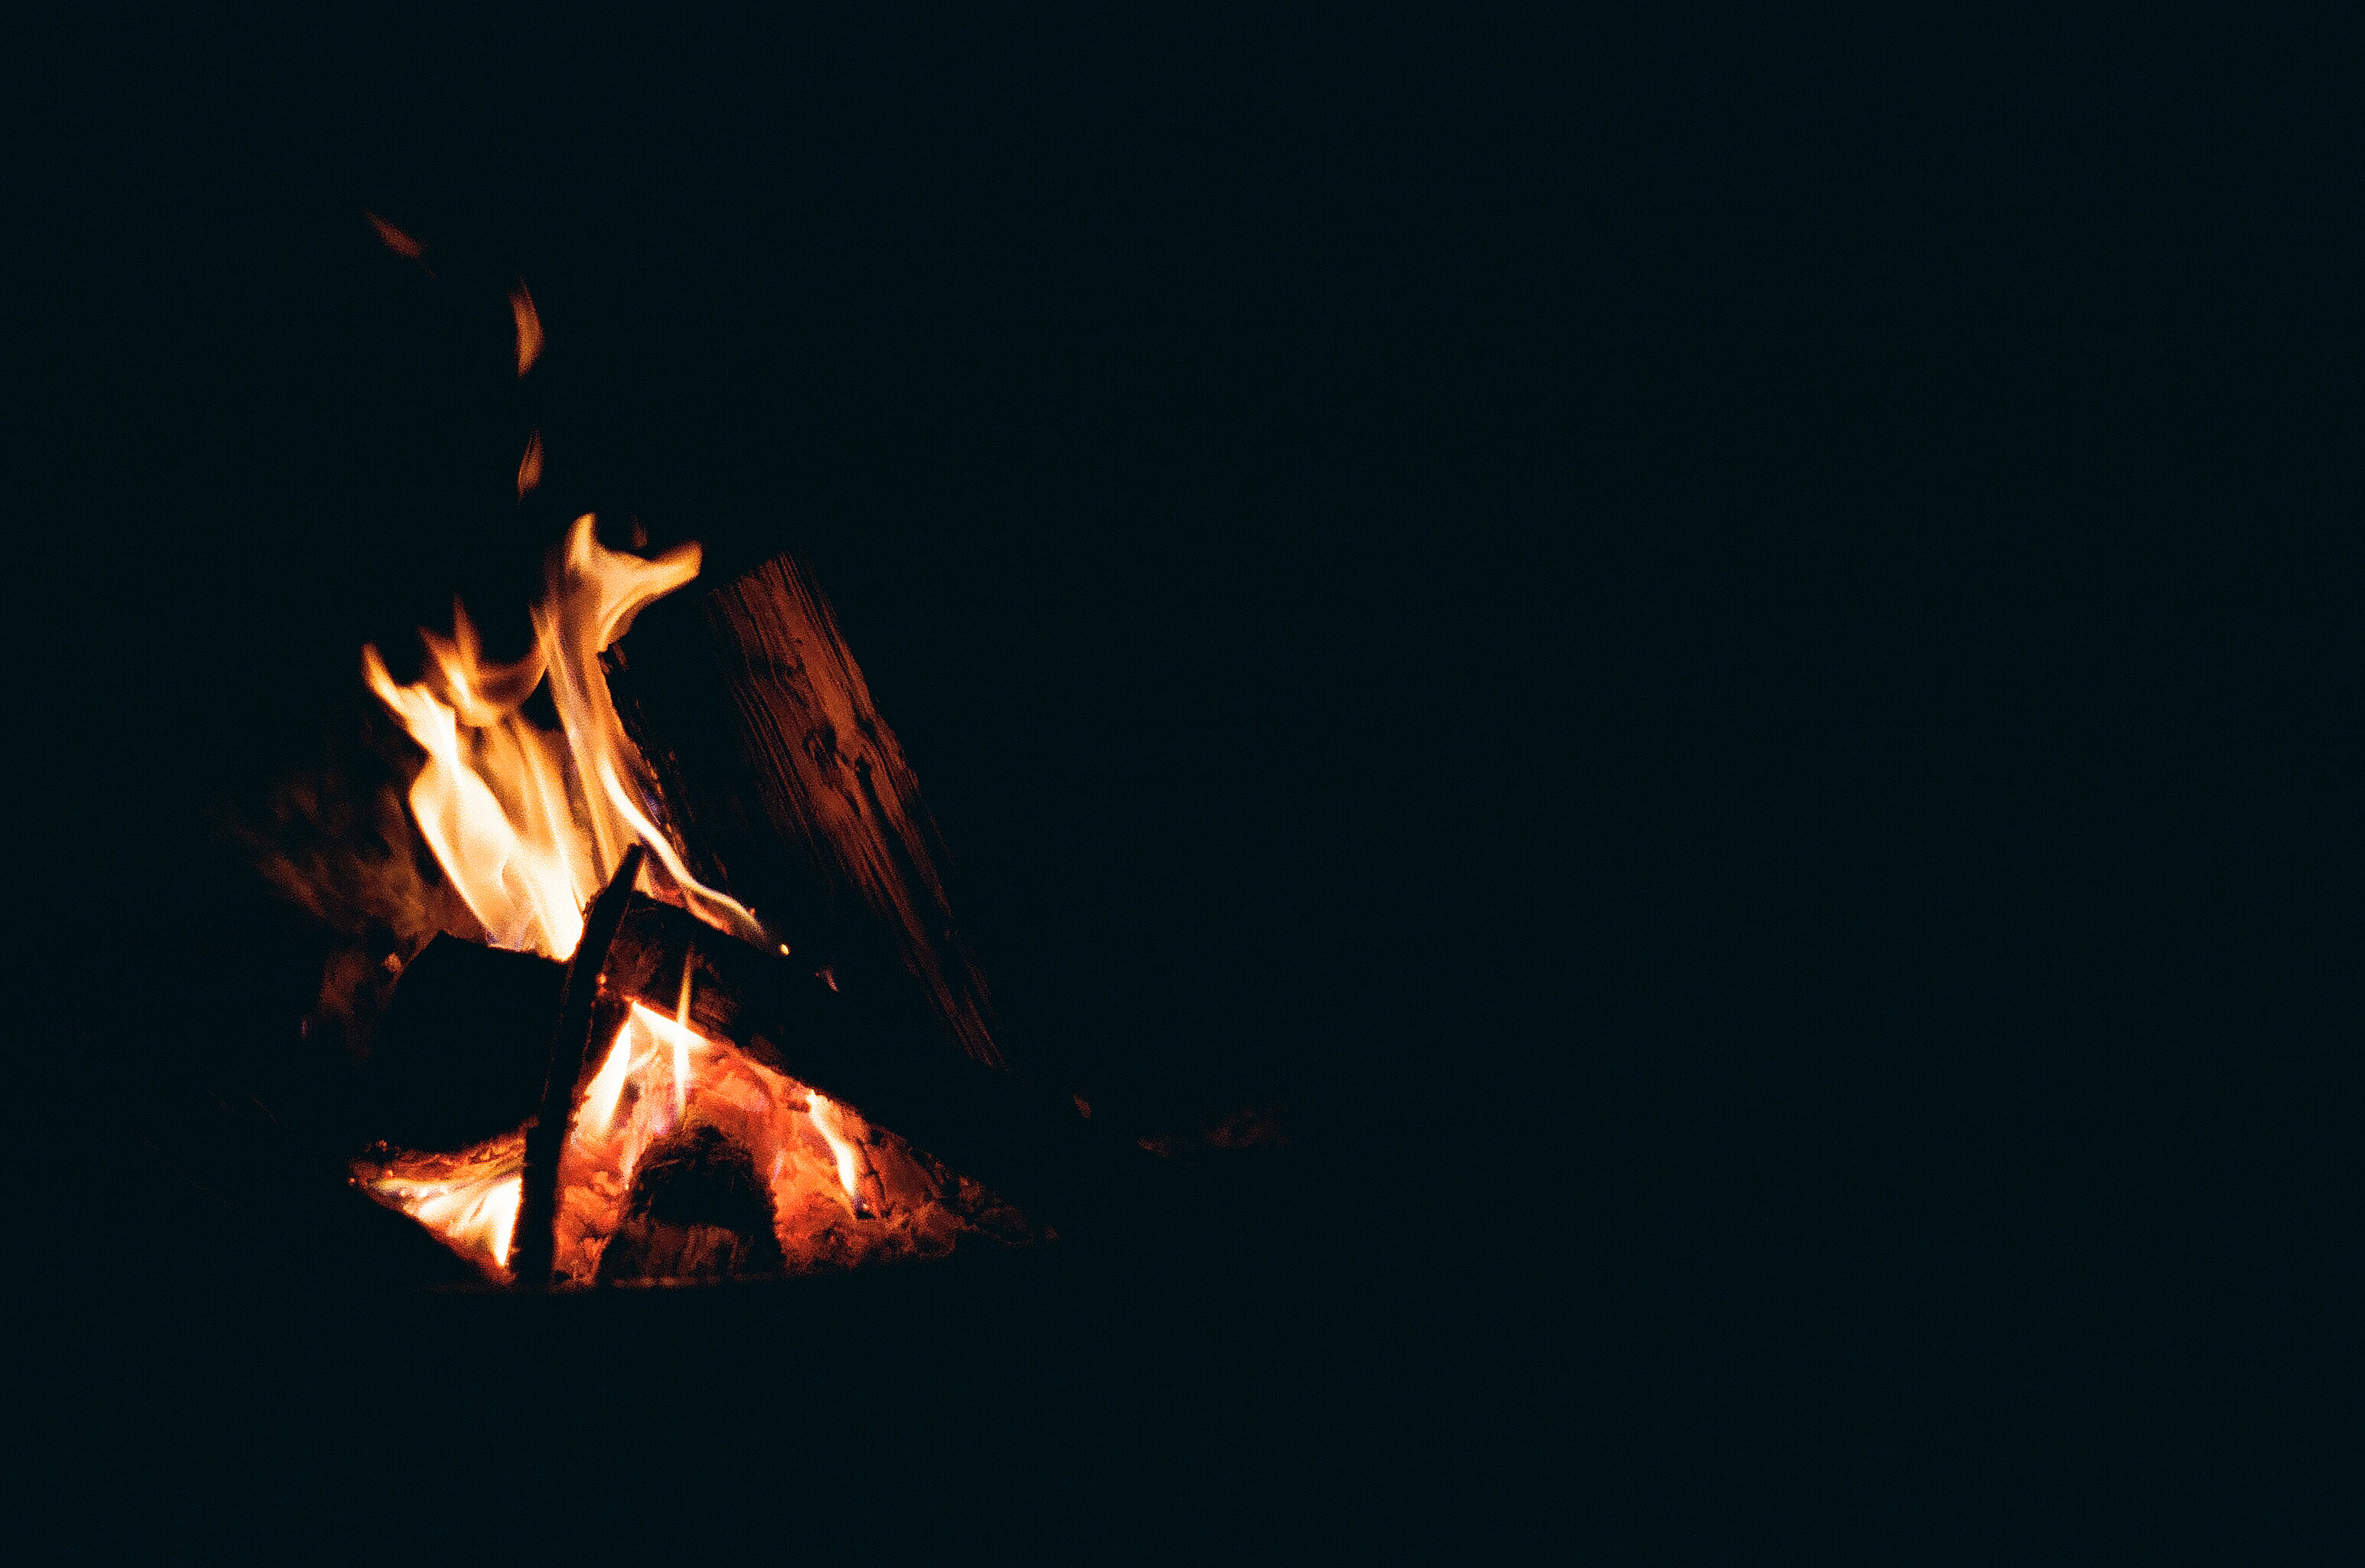 romantic-fire-campfire-burning